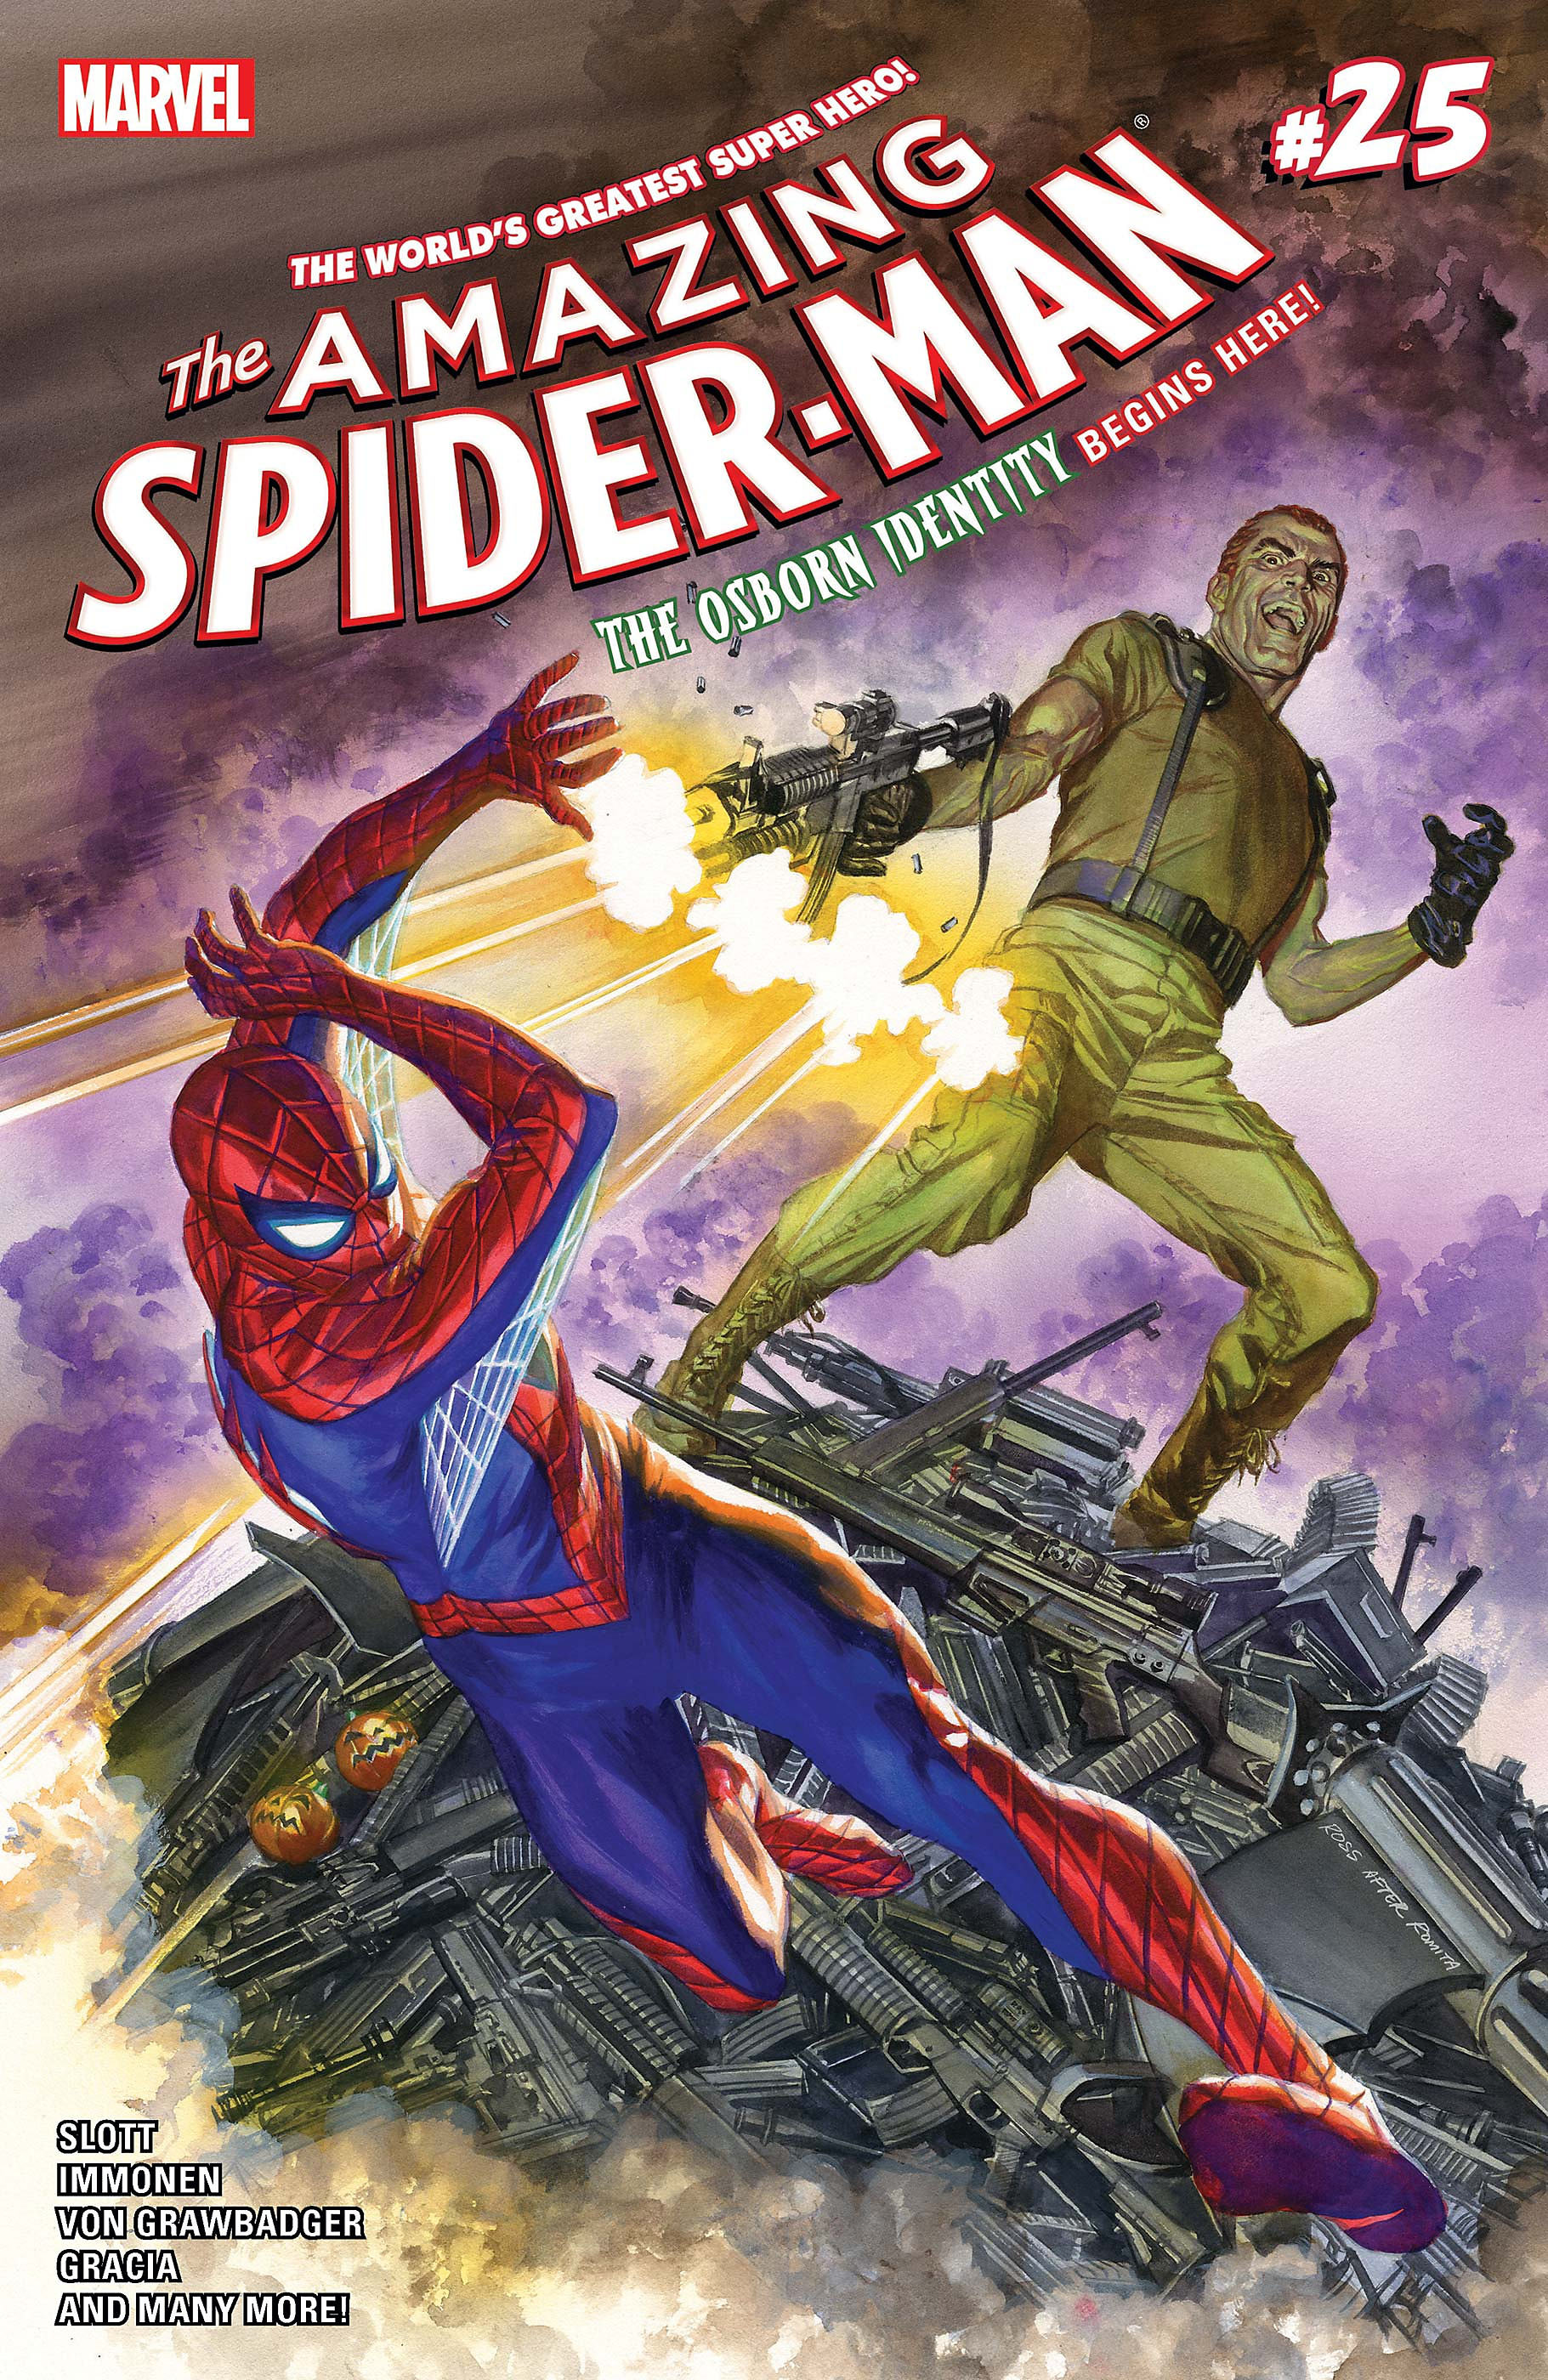 spider-man silver lining reading list comic